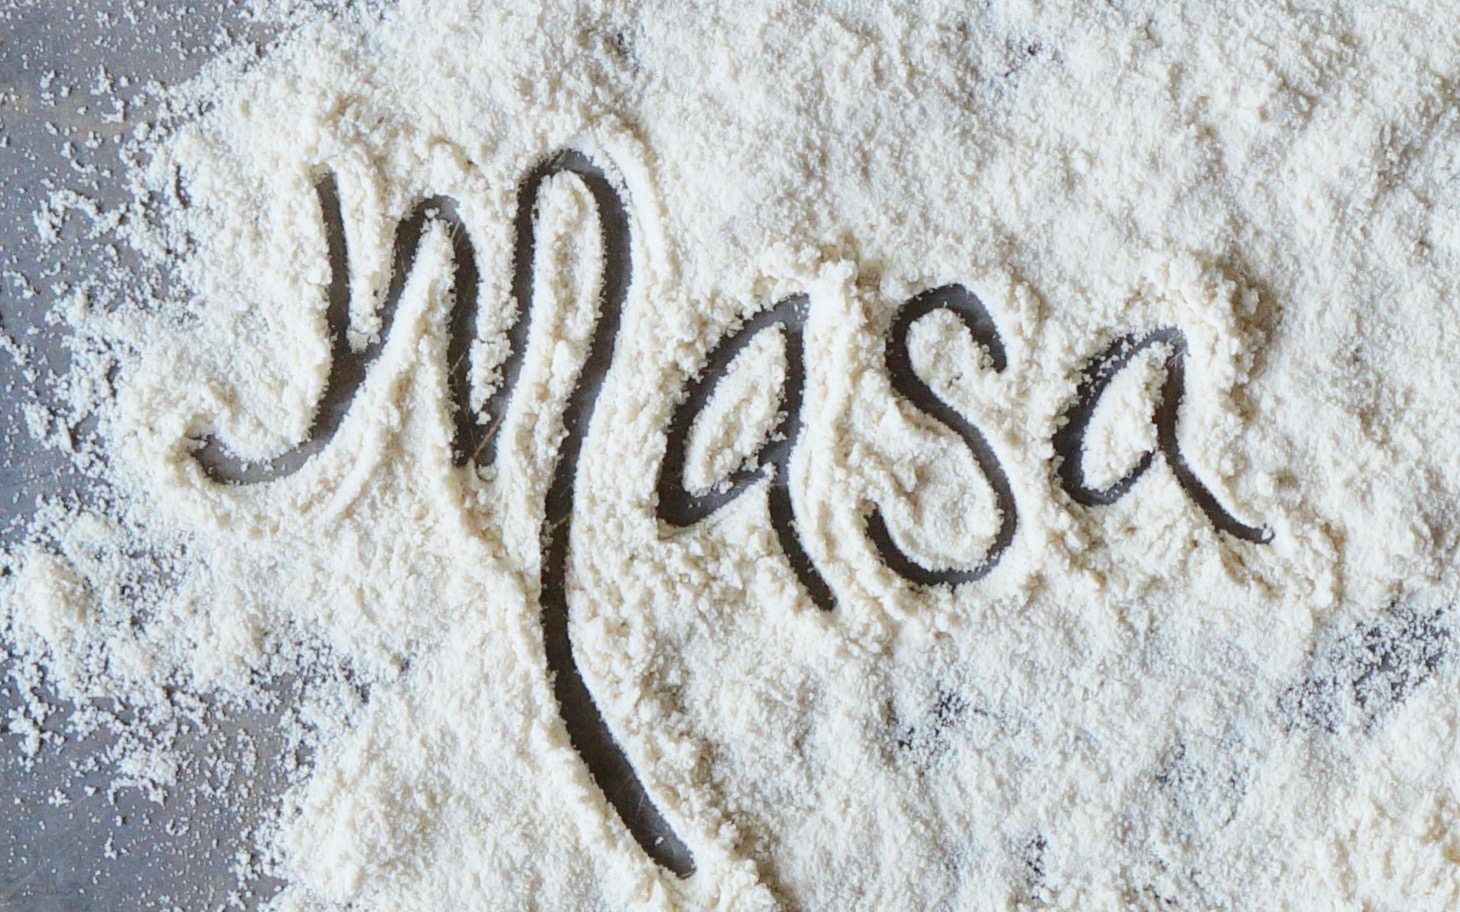 What-Is-Masa-Mexican-Cuisine-Rebecca-Gordon-Publisher-Buttermilk-Lipstick-Culinary-Techniques-Cooking-Lessons-RebeccaGordon-Pastry-Chef-Modern-Entertaining-Birmingham-Alabama